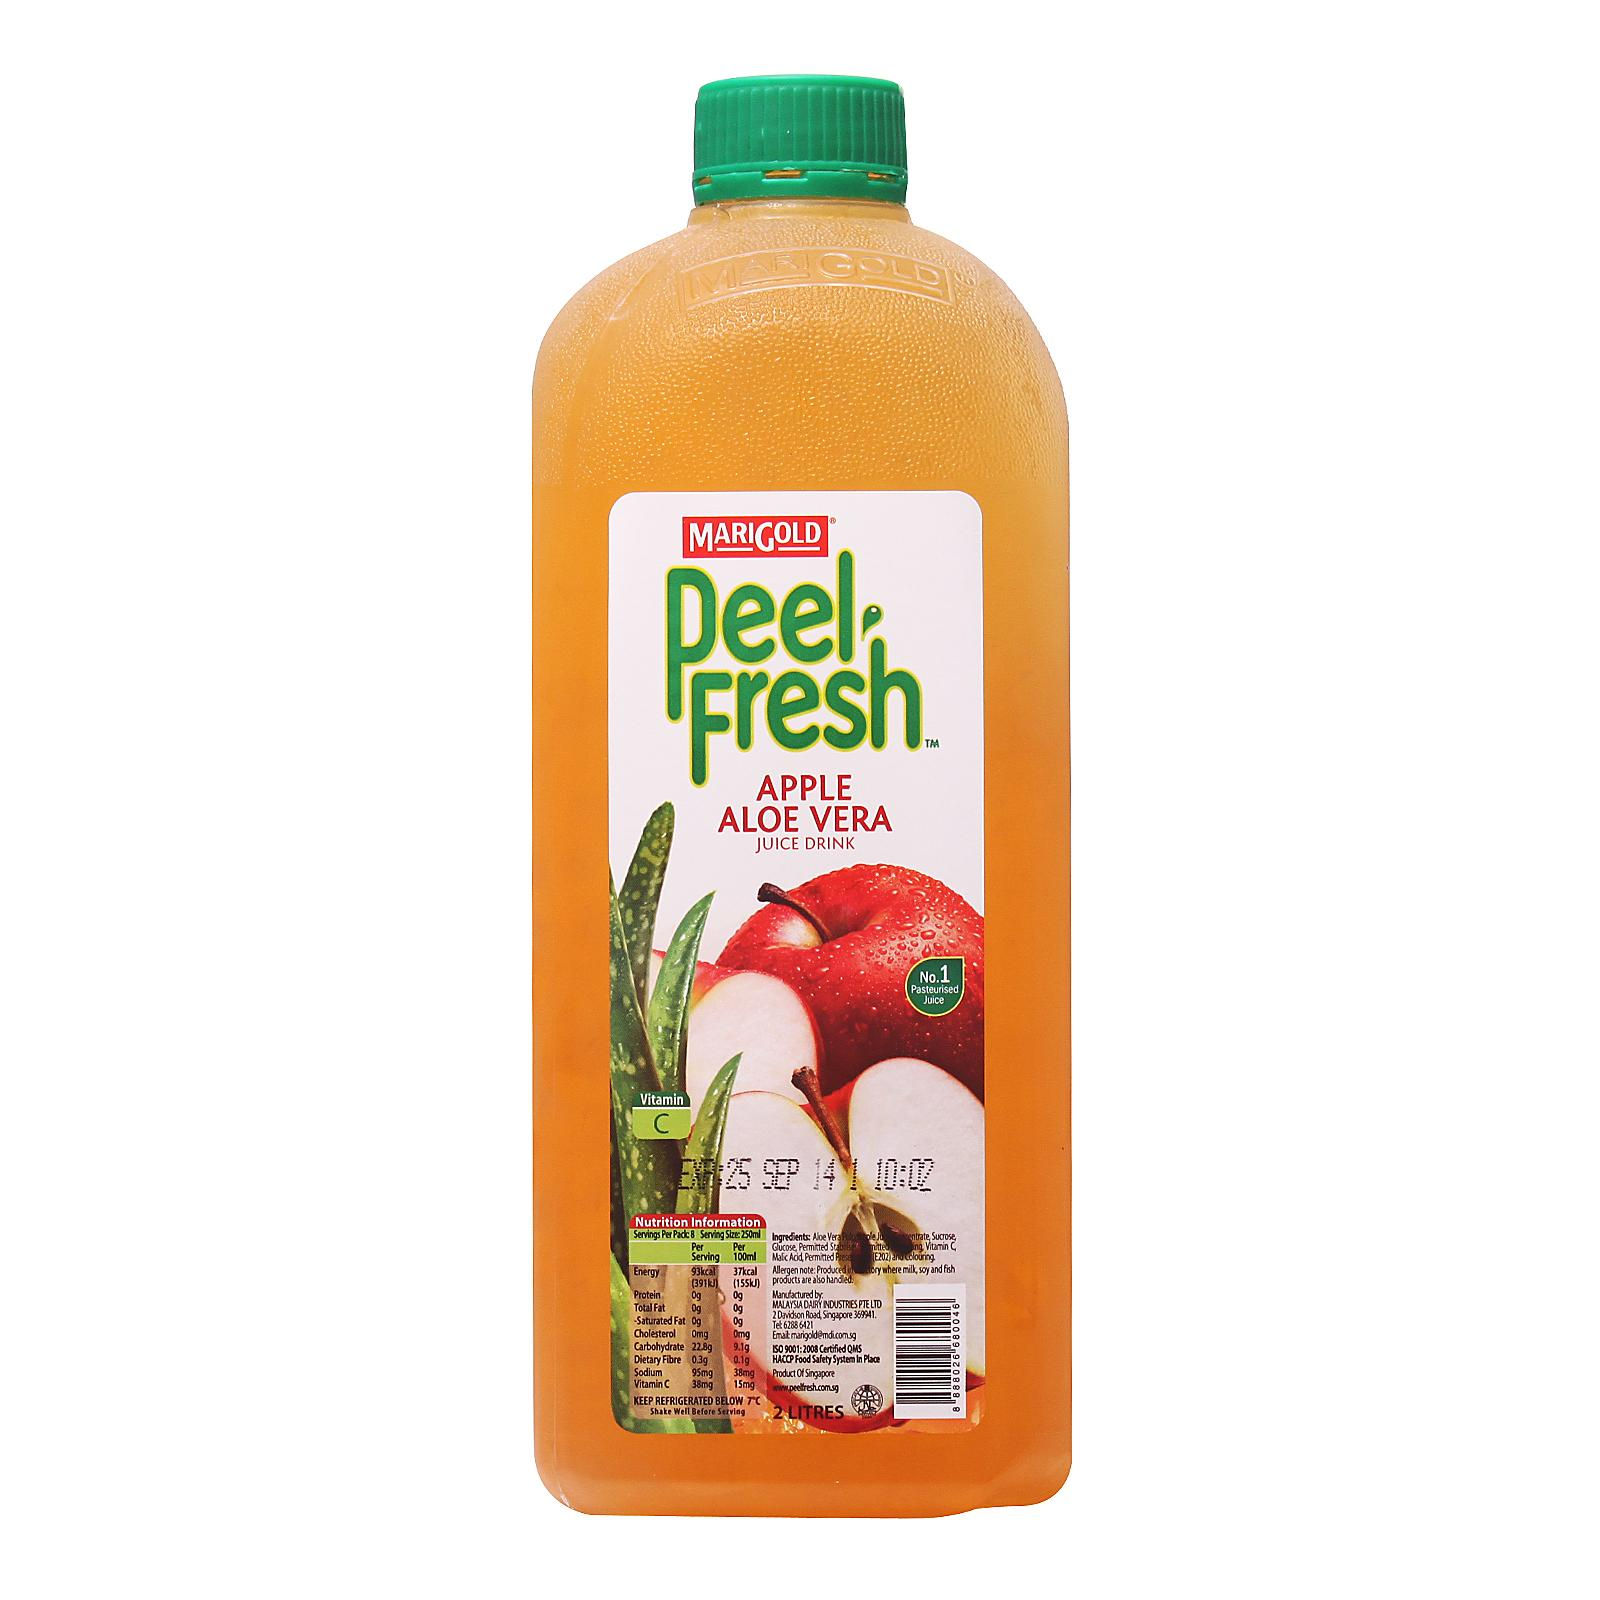 MARIGOLD Peel Fresh Juice Drink - Apple Aloe Vera